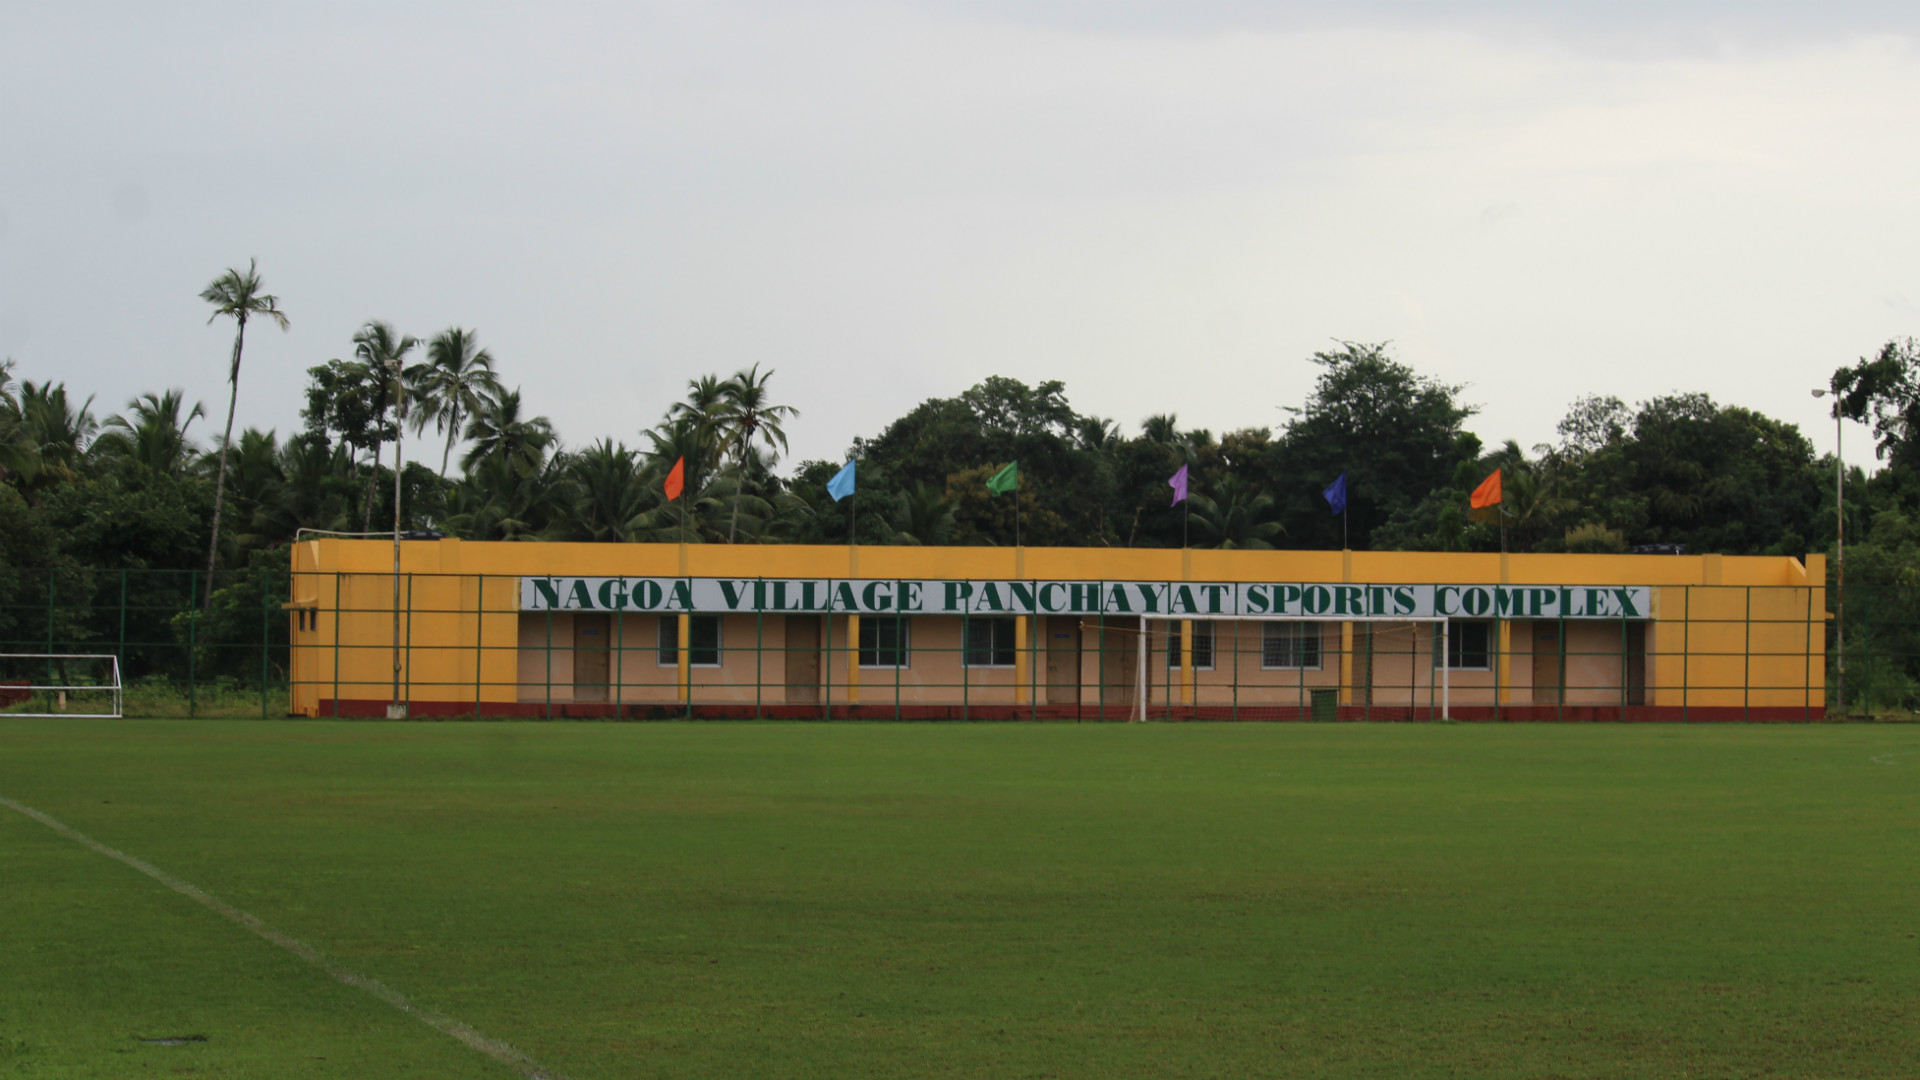 Nagoa Village Panchayat Sports Complex